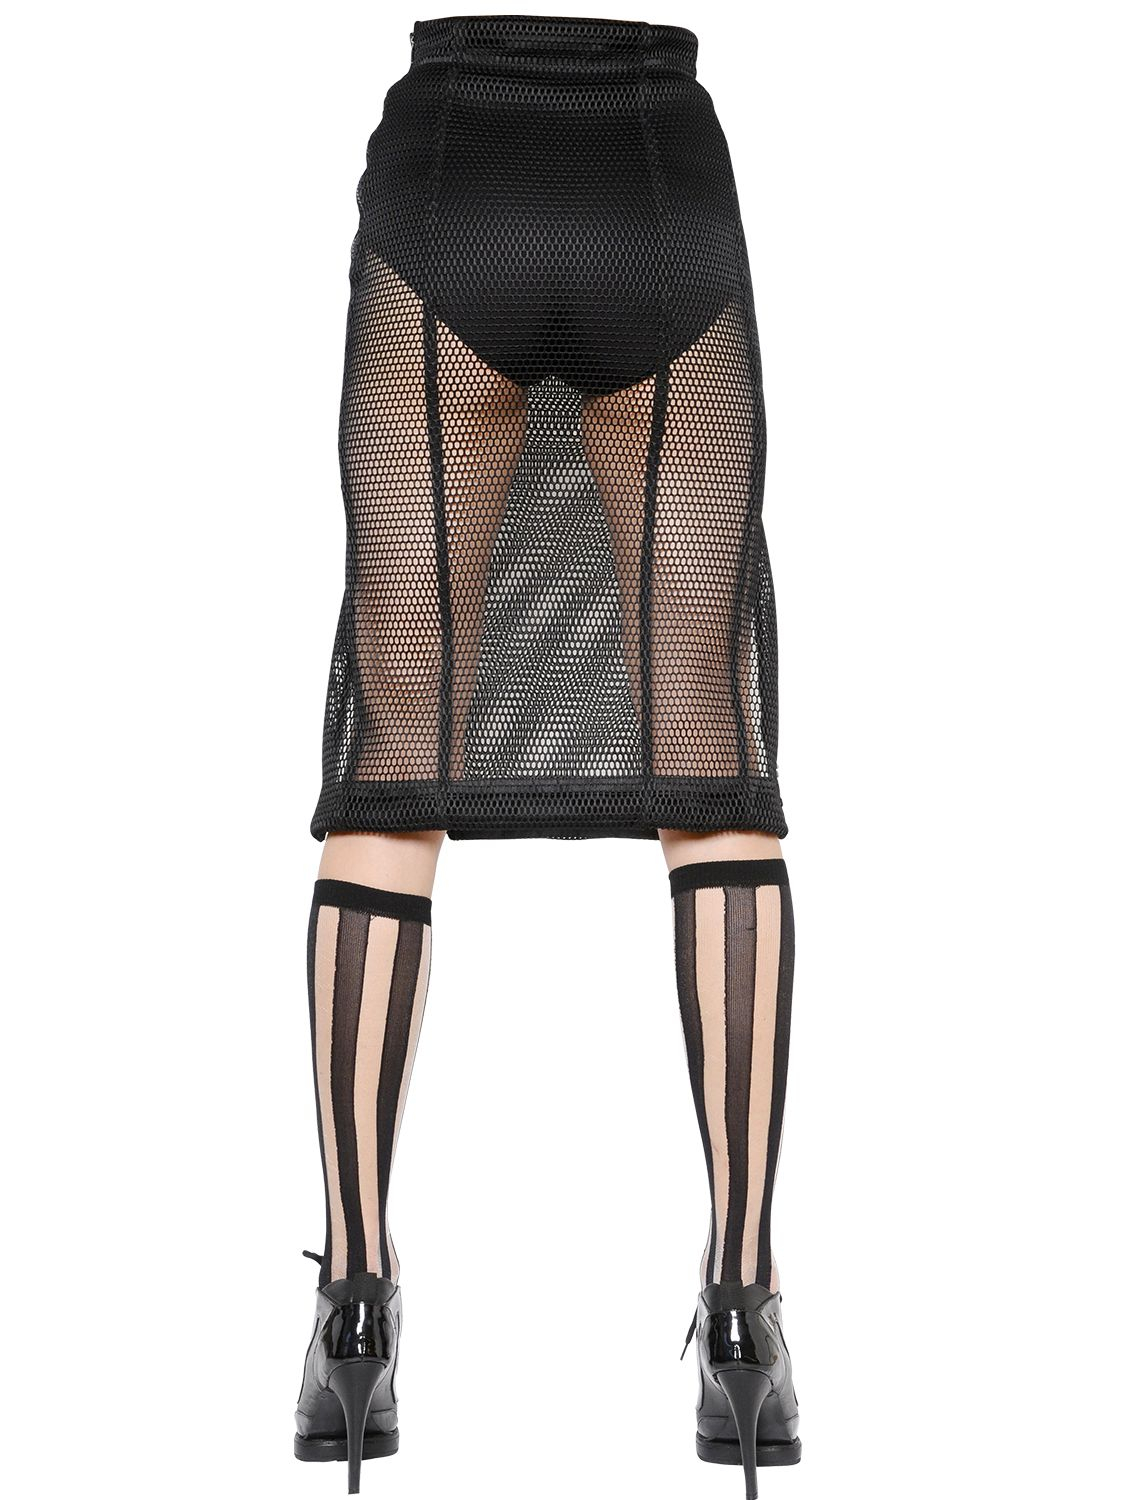 Ktz High Waisted Mesh Skirt in Black | Lyst